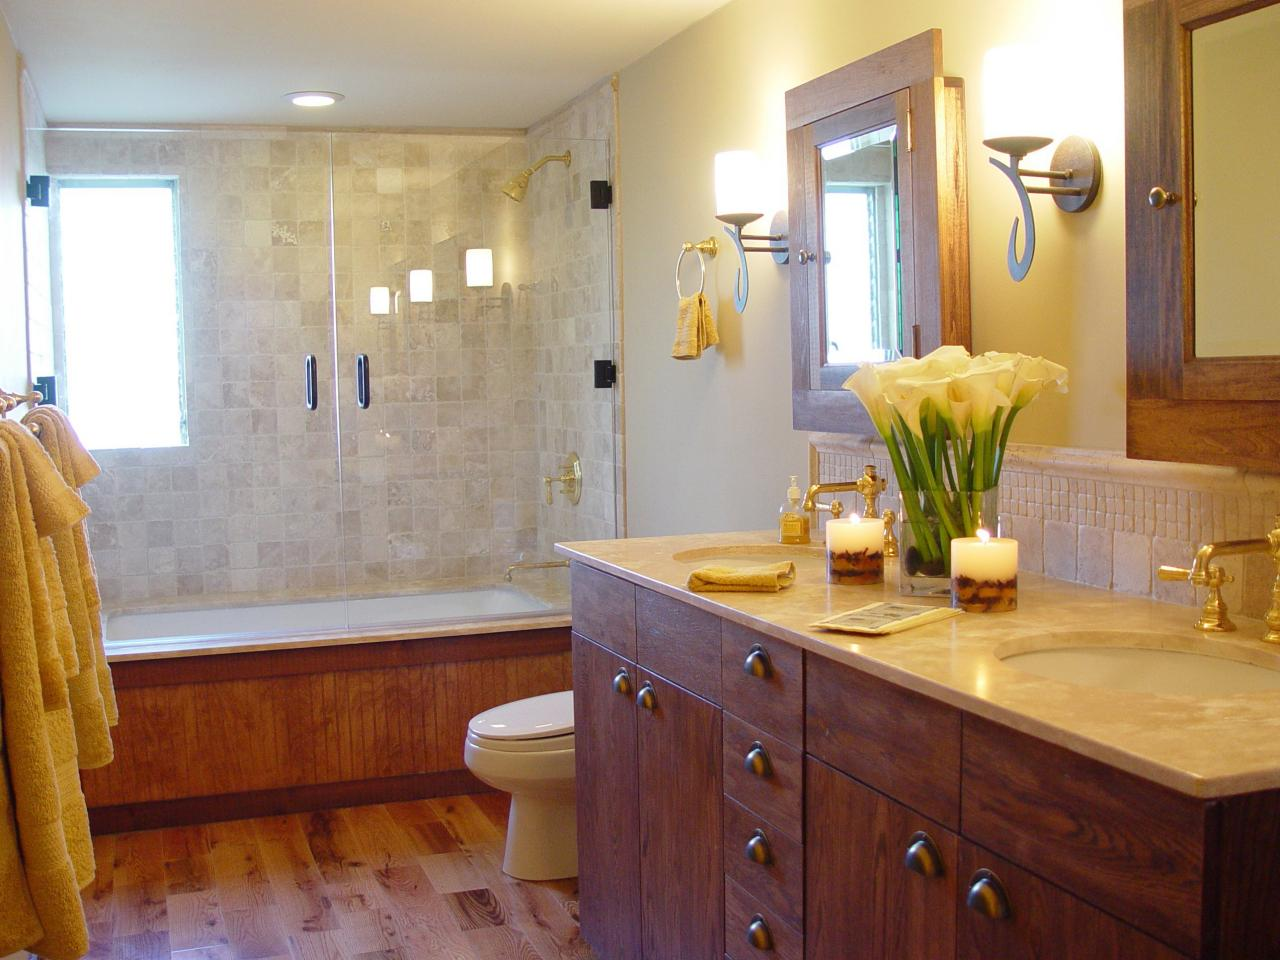 Designing a full bath hgtv - Small full bathroom remodel ideas ...